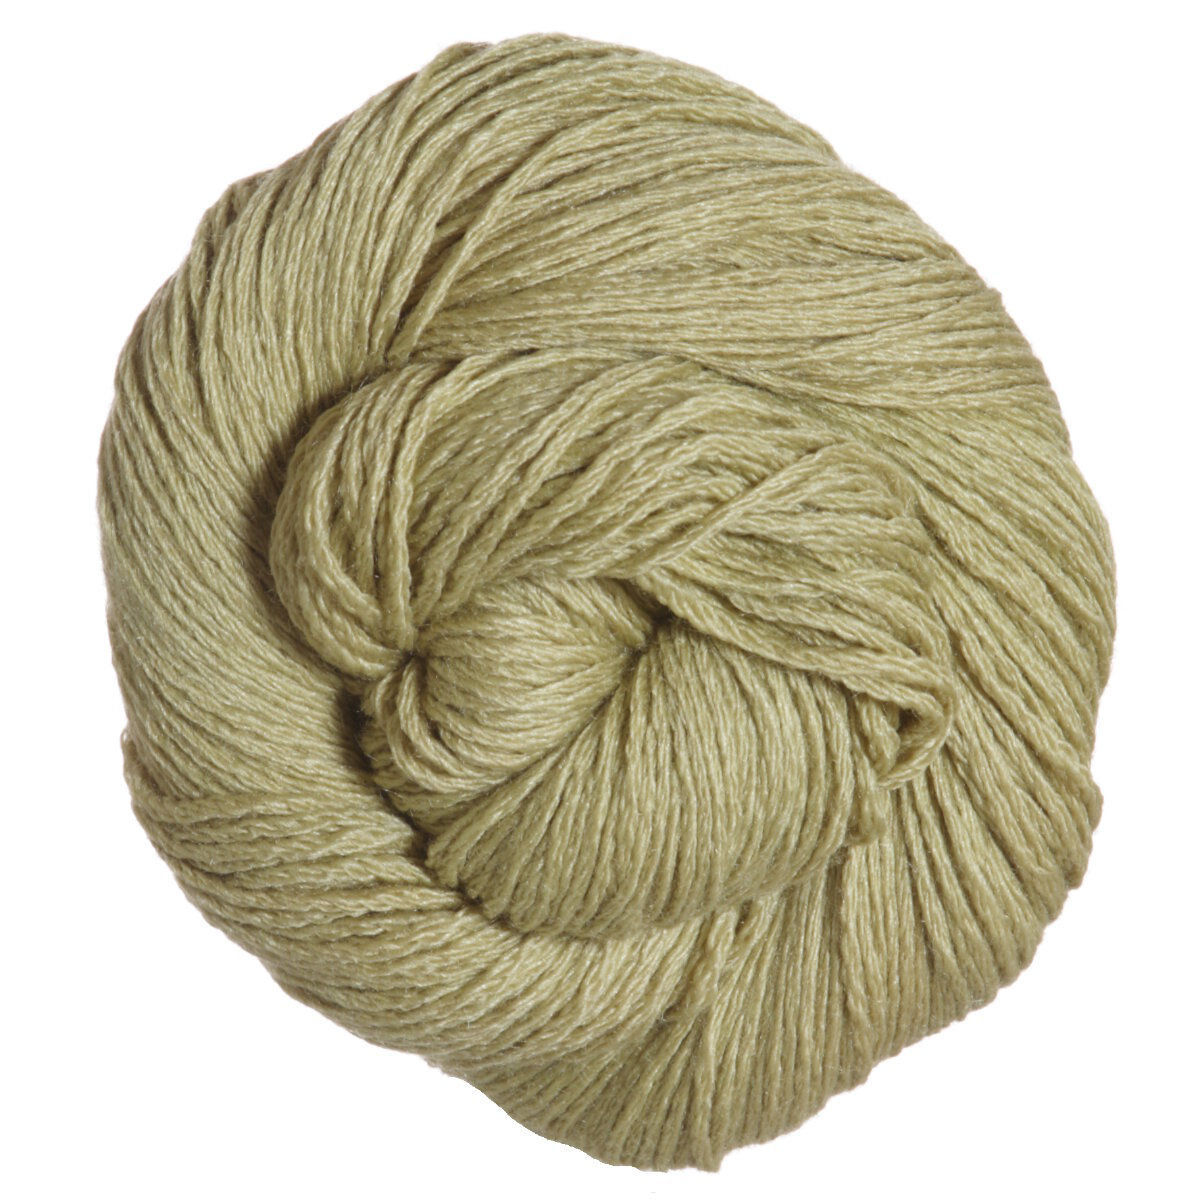 Knitting With Two Colors Carrying Yarn : Swans island natural colors sport yarn sand dollar